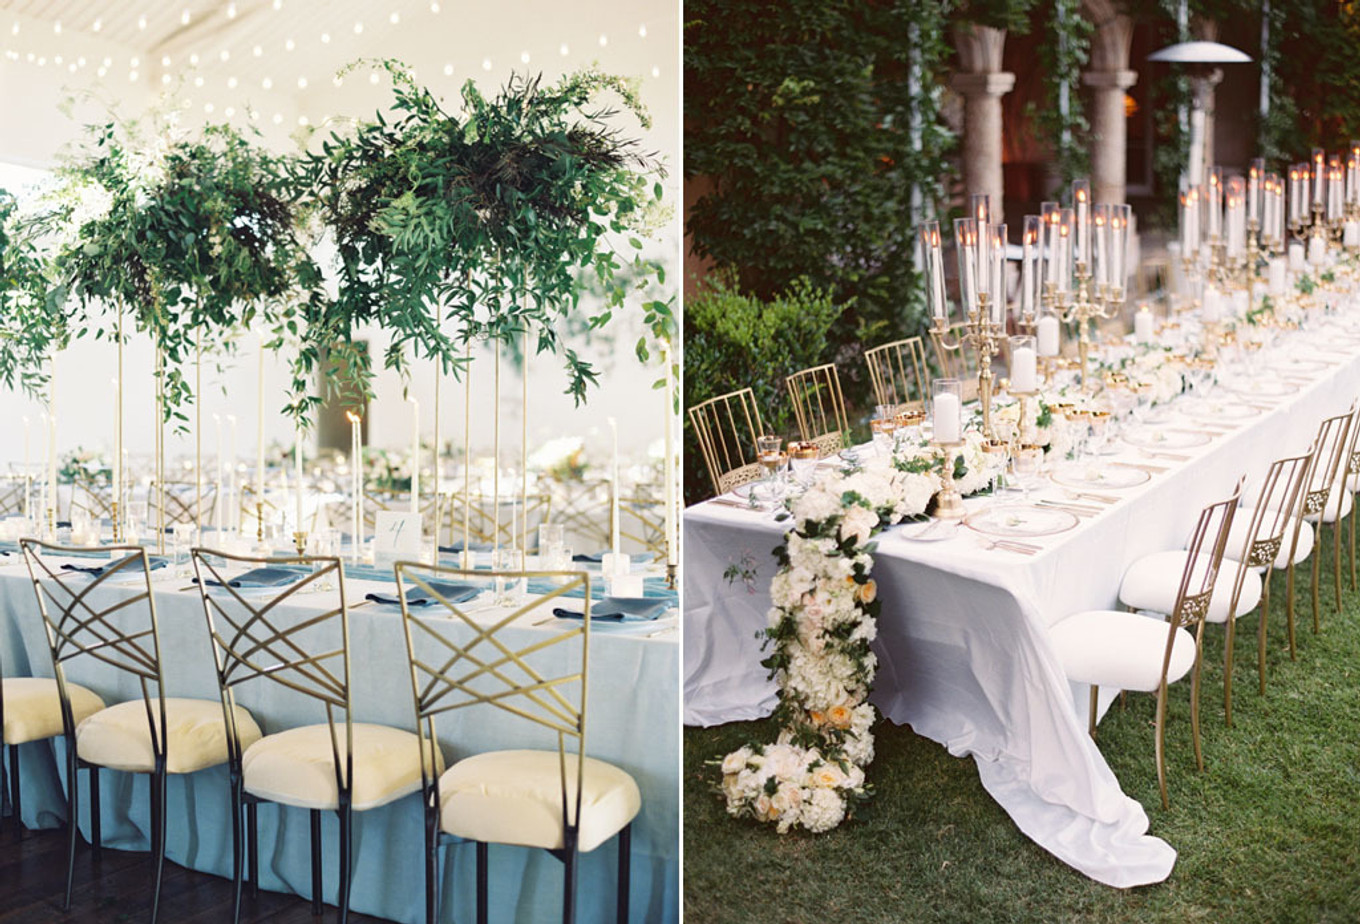 All you need to know about wedding decorations bridestory blog add to board junglespirit Choice Image